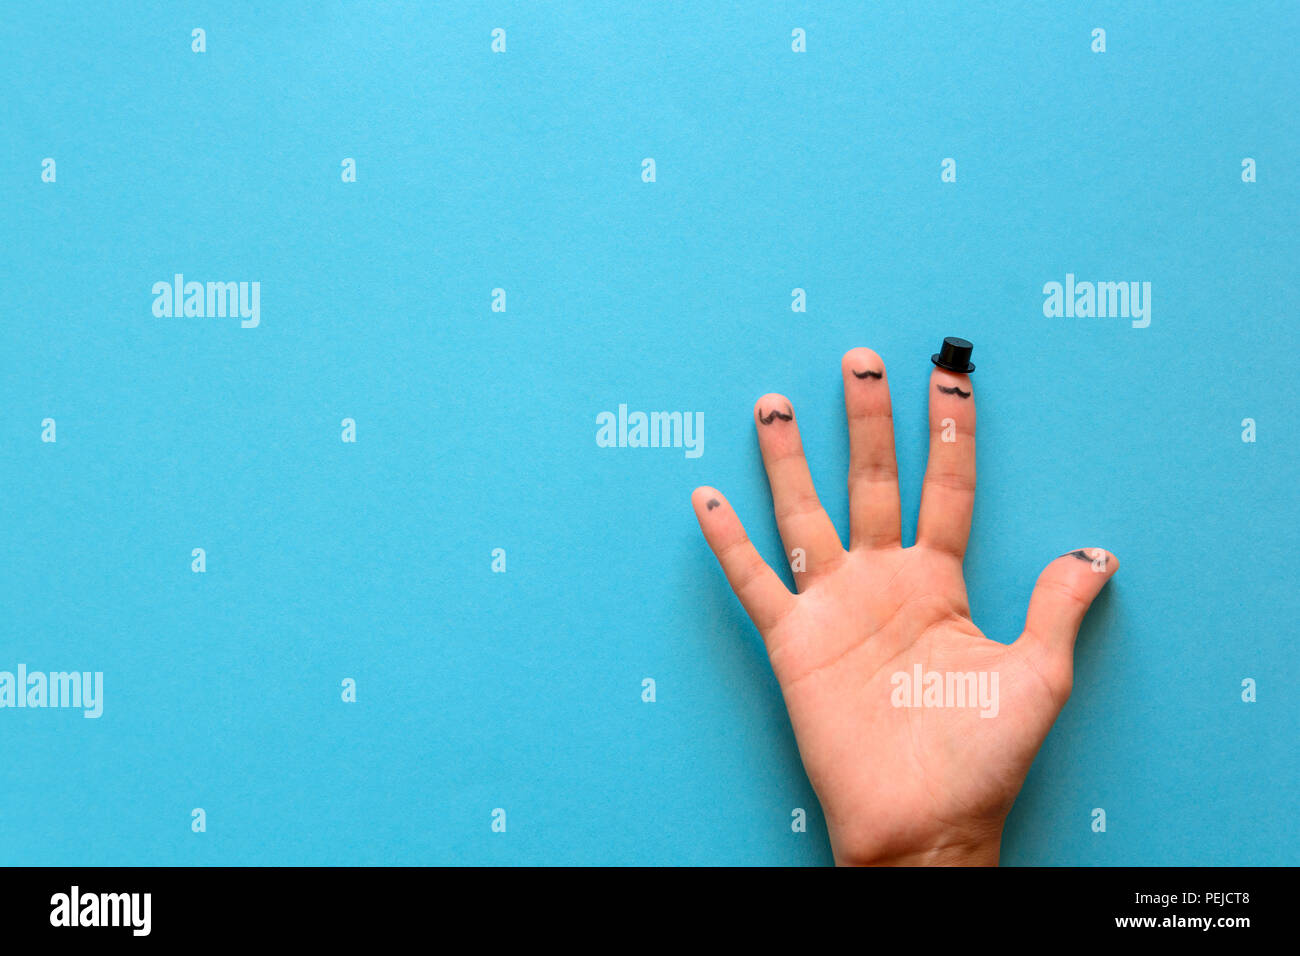 Fingers with a mustache and cylinder on blue paper background. Movember concept. Top view. Flat lay. - Stock Image